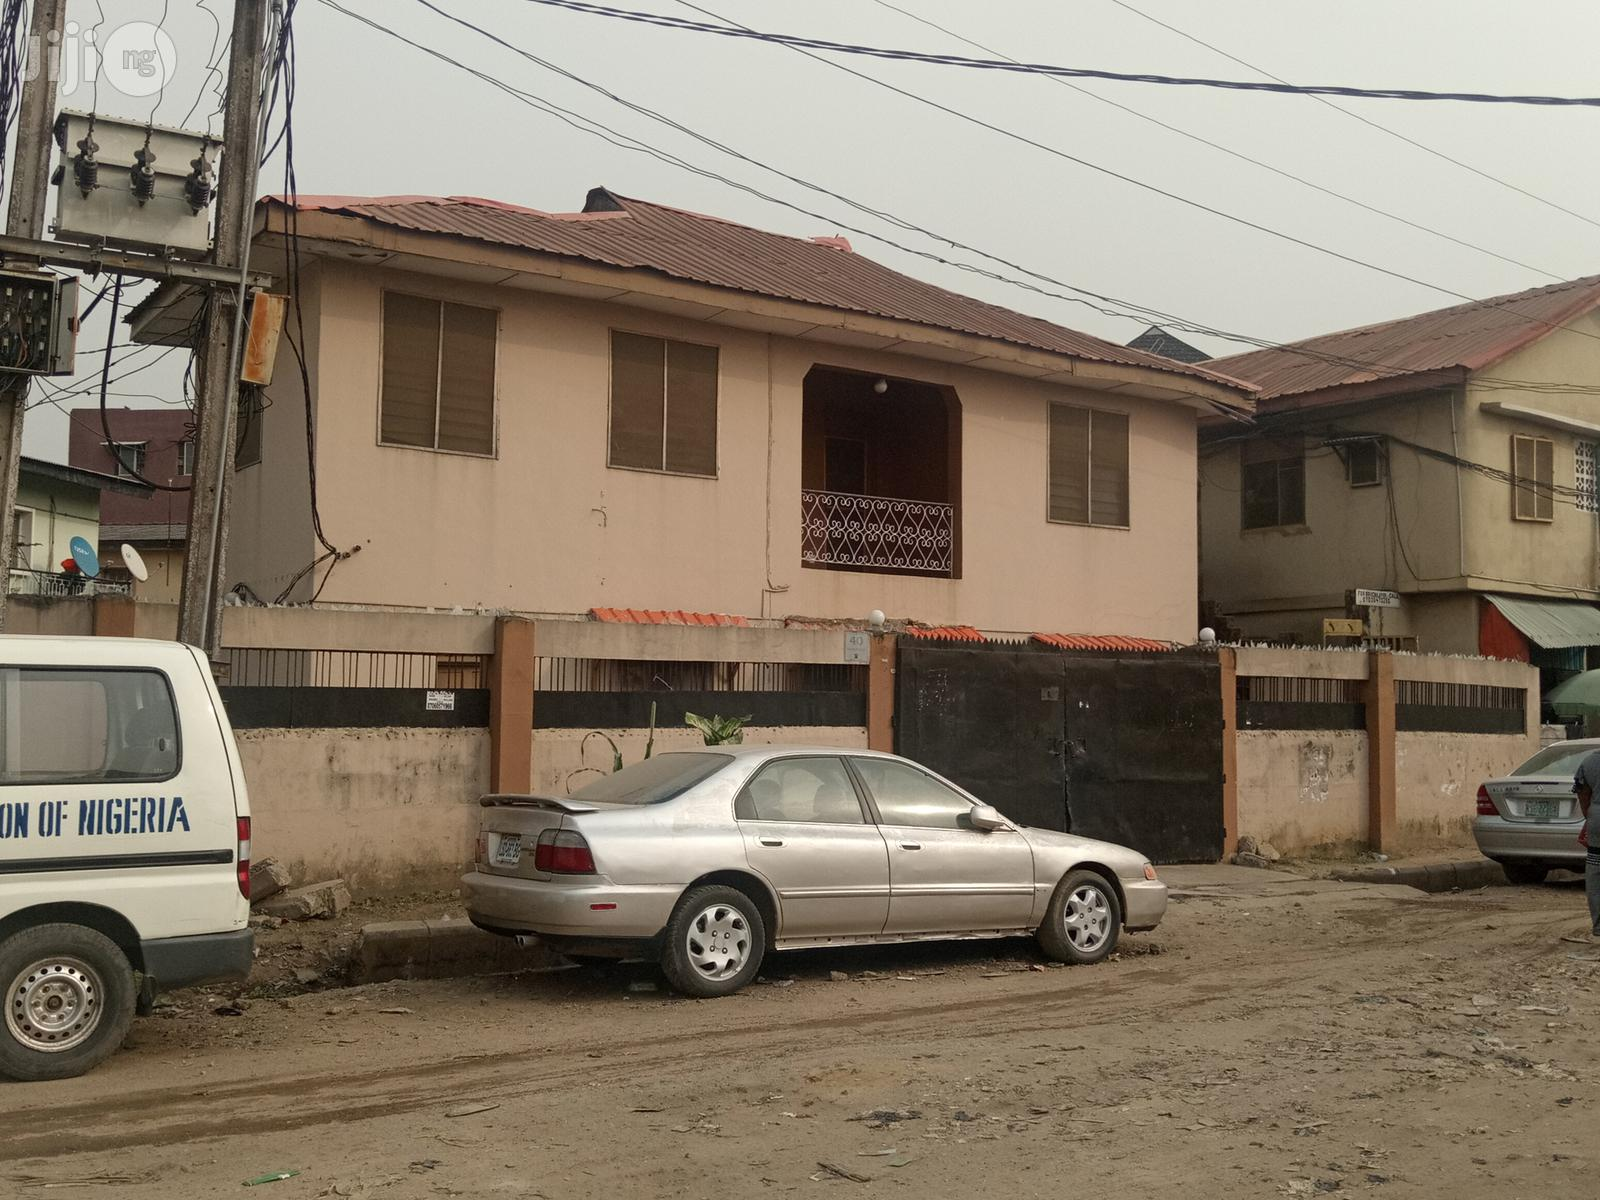 3 Bedroom Flat for Sale   Houses & Apartments For Sale for sale in Surulere, Lagos State, Nigeria